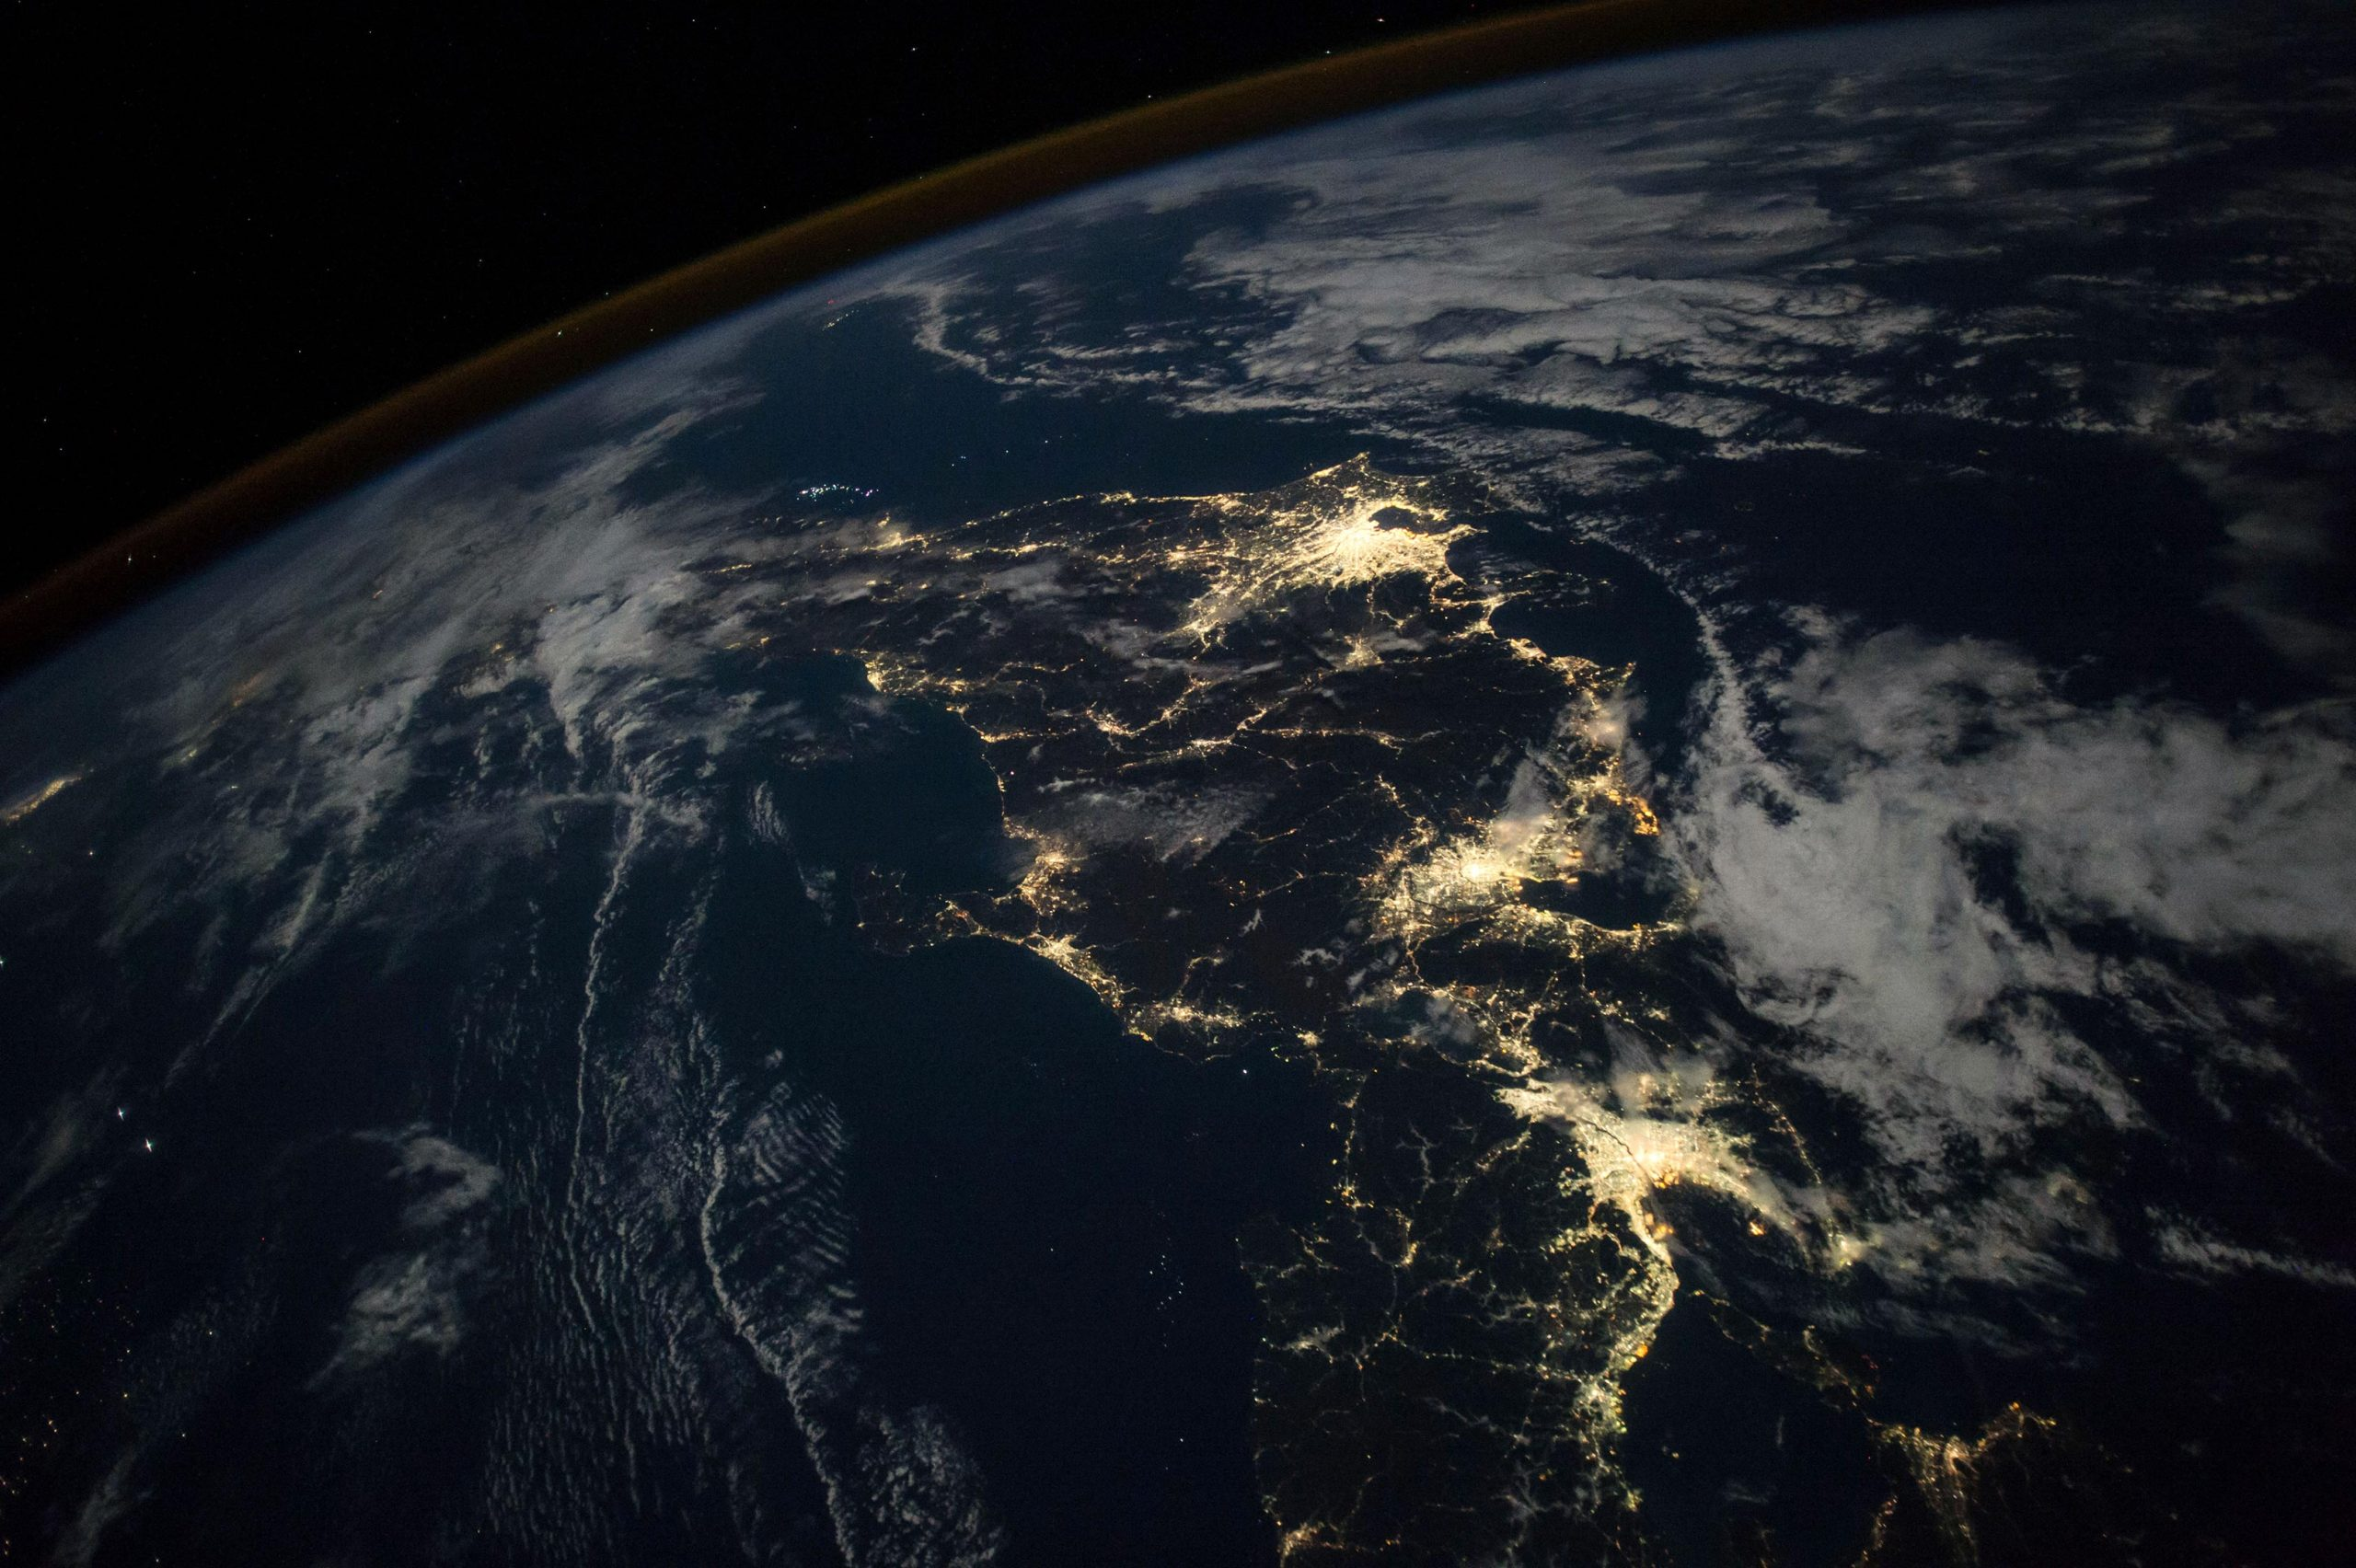 Comments on: Japan at Night: A Favorite Astronaut Photo - SciTechDaily